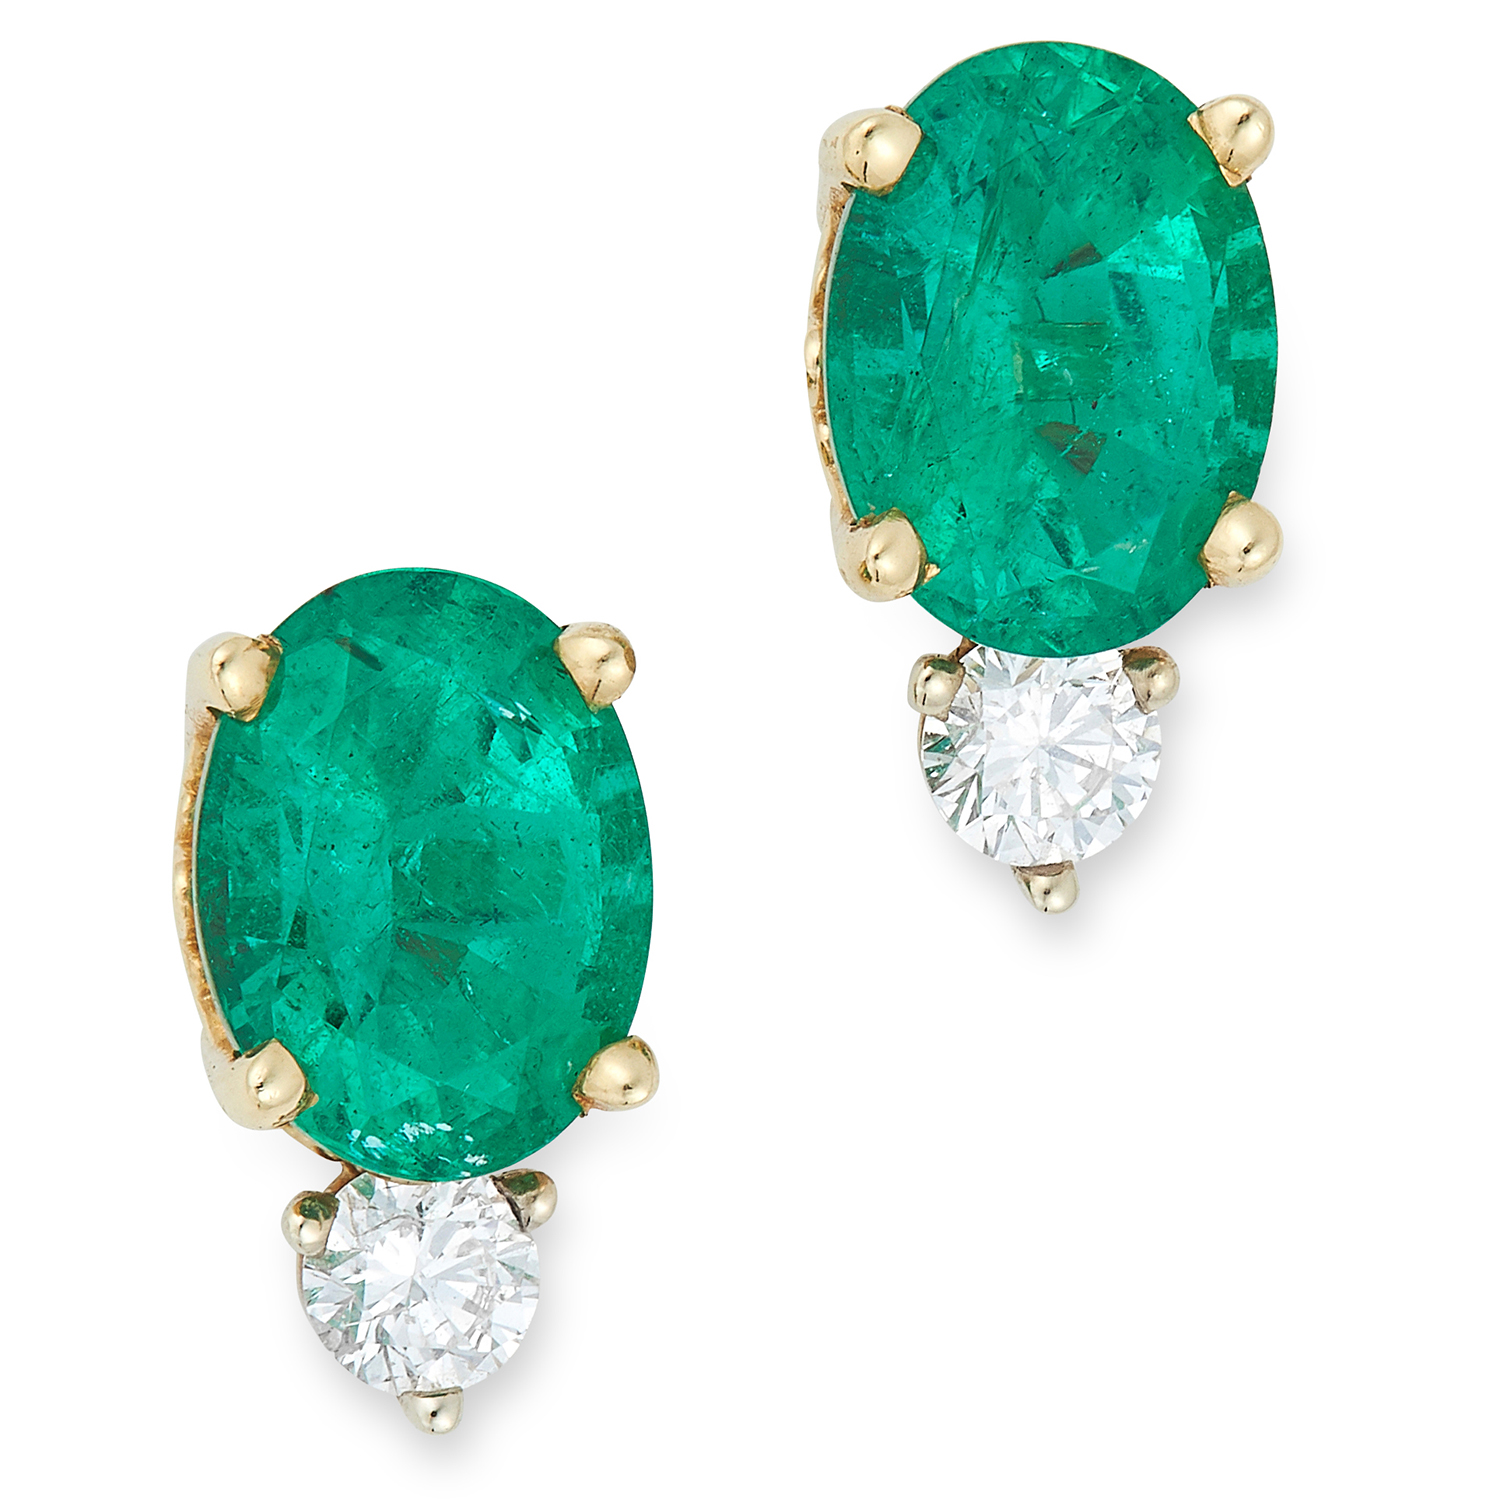 A PAIR OF EMERALD AND DIAMOND STUD EARRINGS each set with a round cut diamond and an oval cut